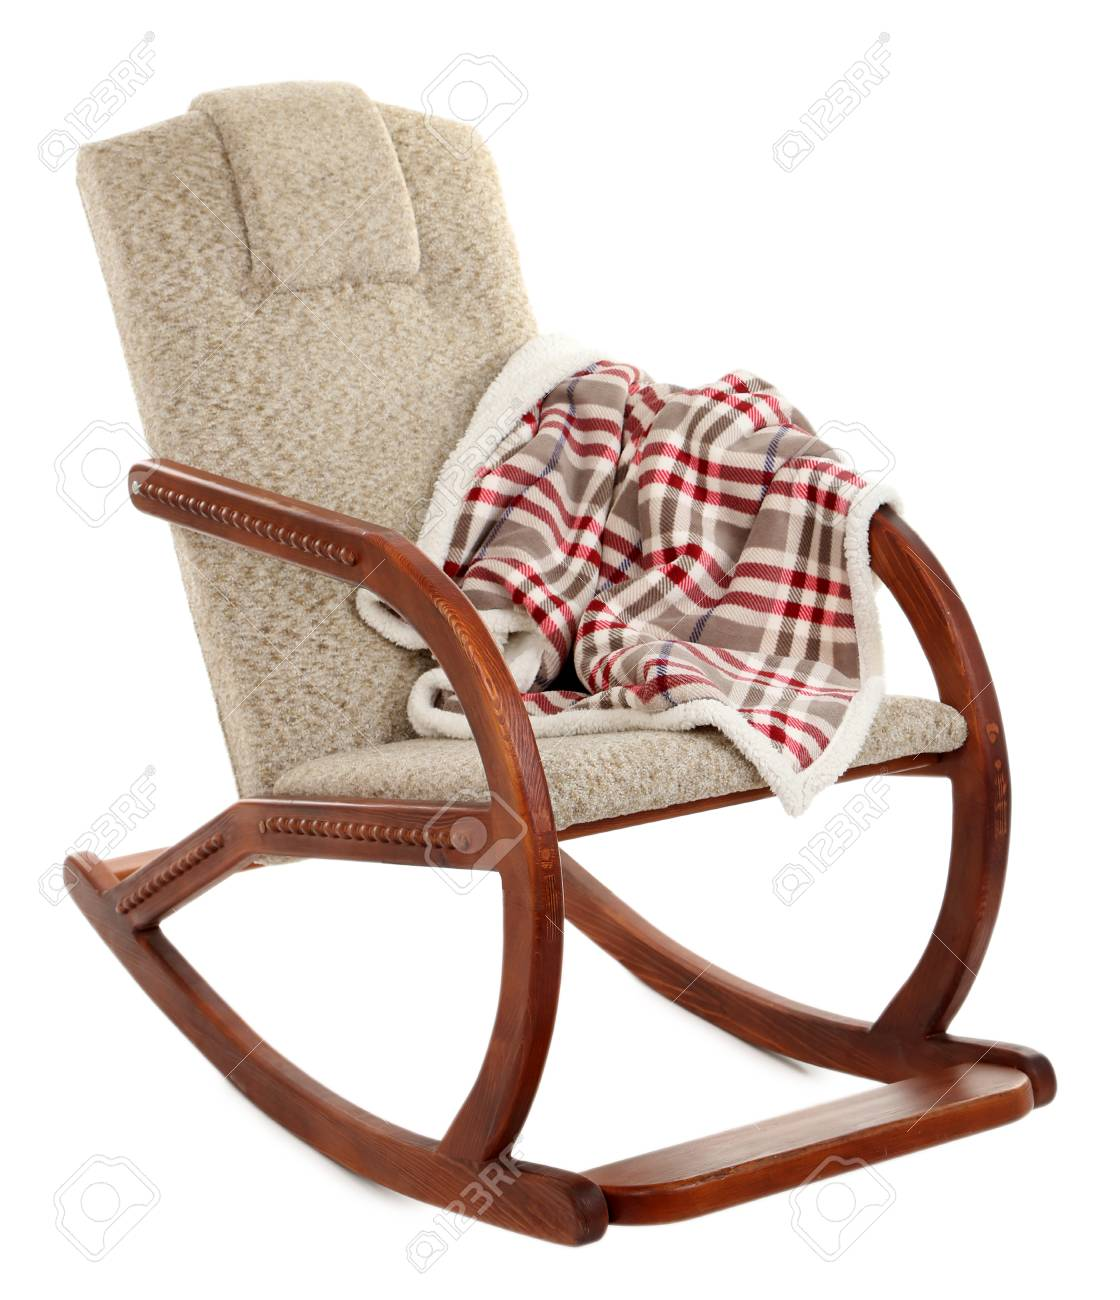 Astounding Modern Rocking Chair With Rug Isolated On White Bralicious Painted Fabric Chair Ideas Braliciousco